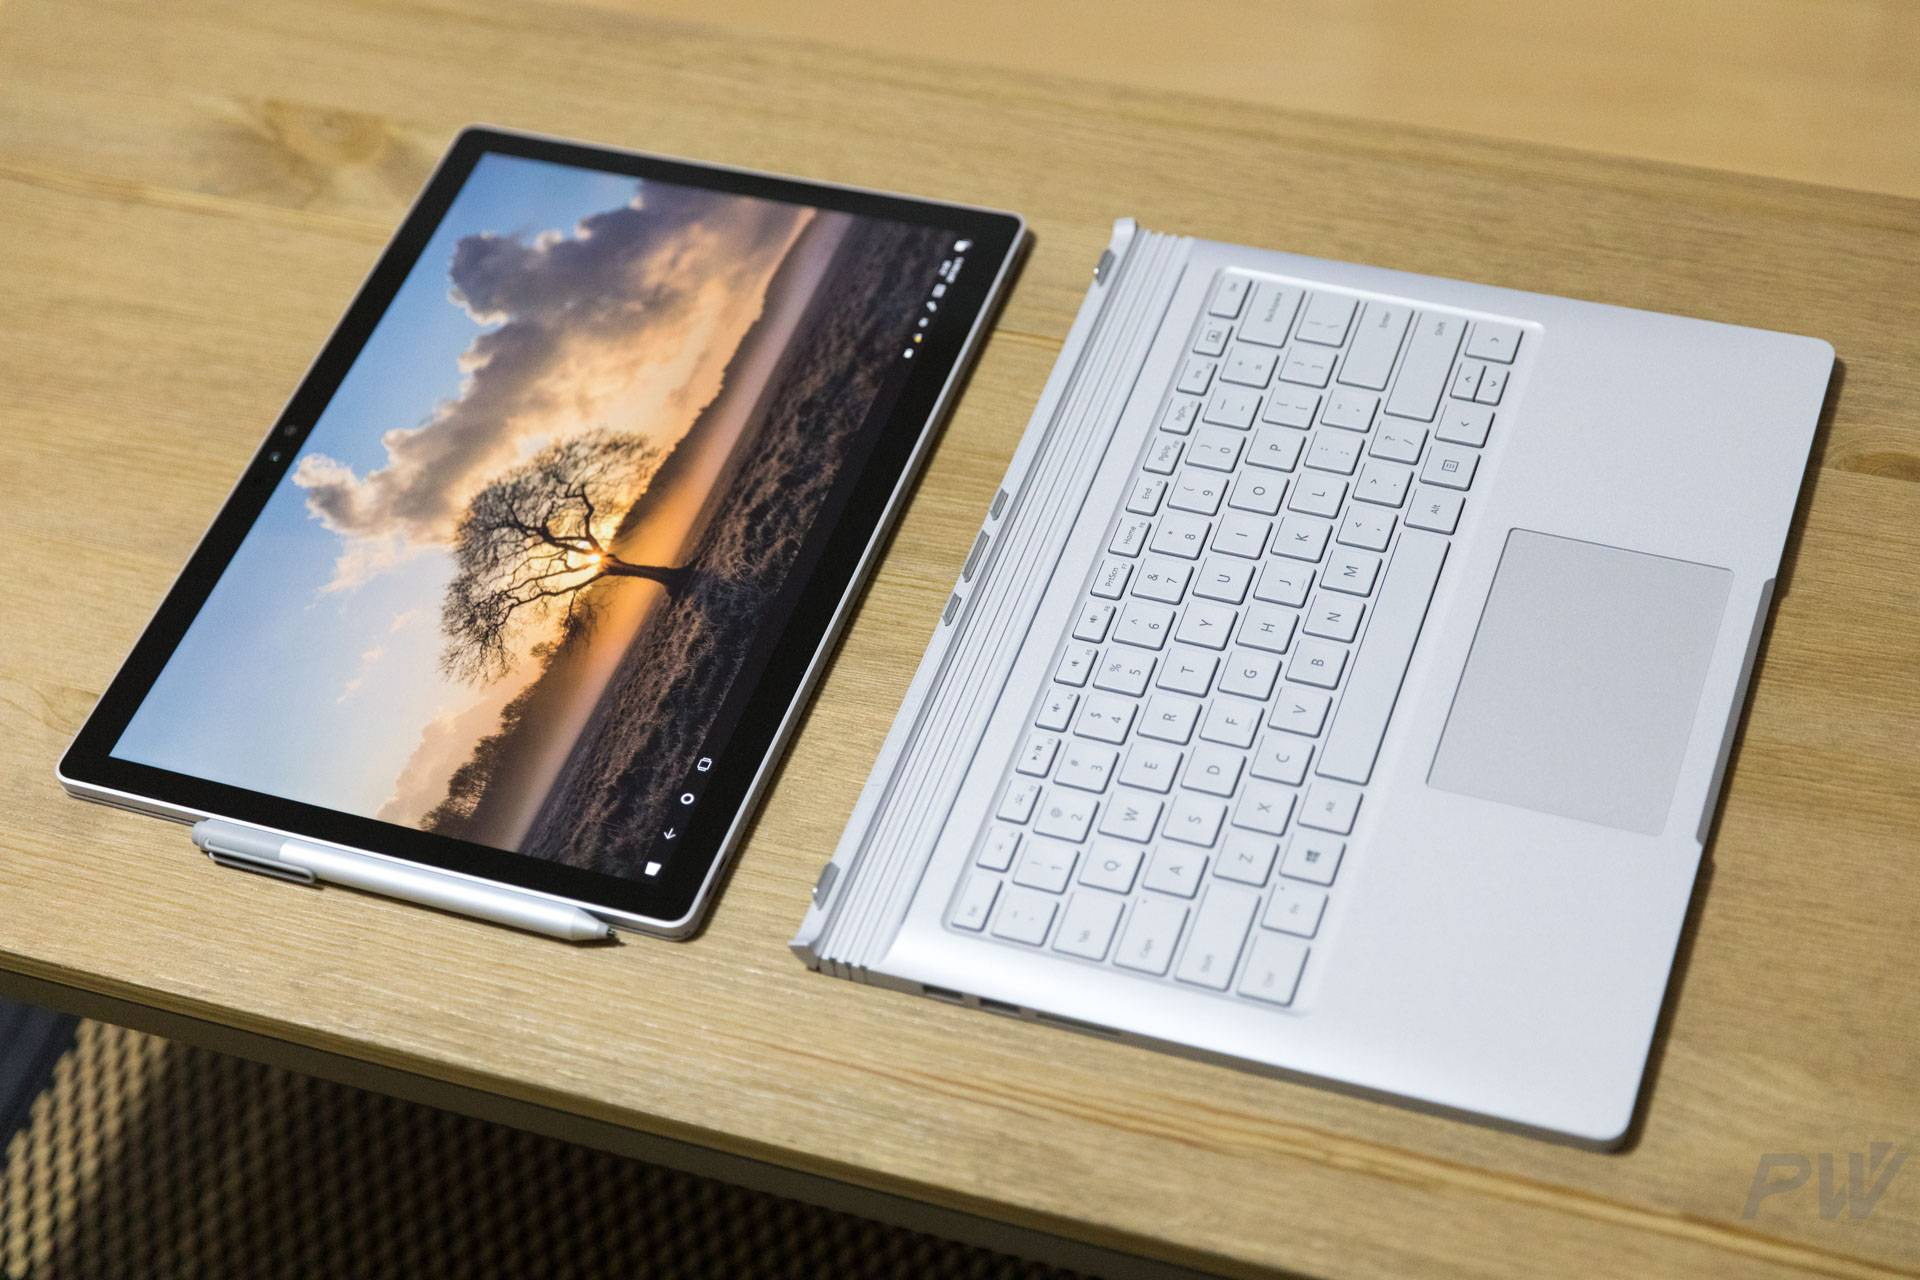 Microsoft Surface Book 2017 Photo by Hao Ying-19